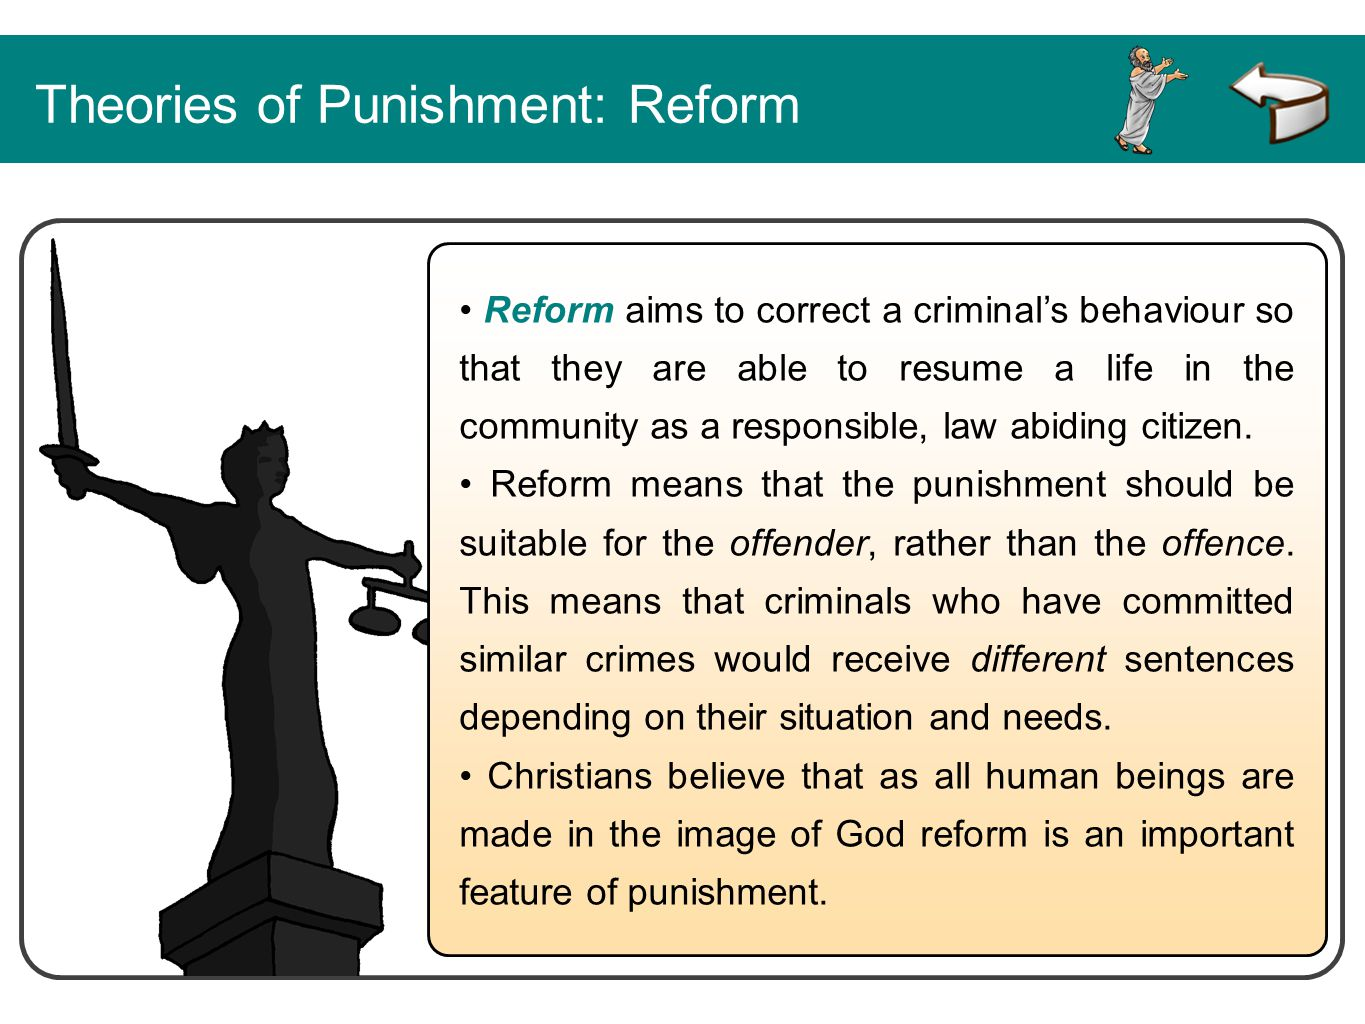 Theories of Punishment: Reform